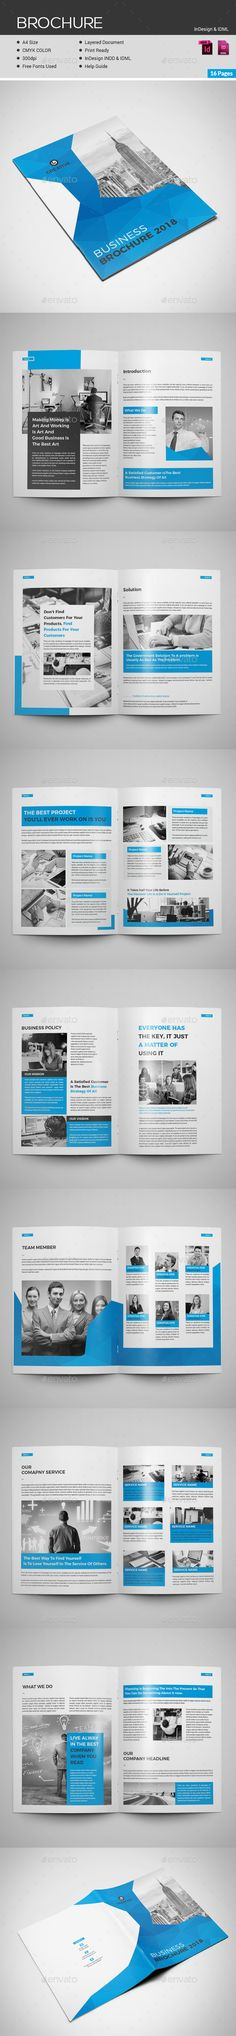 8 Page Brochure Brochures Brochure Template And Template